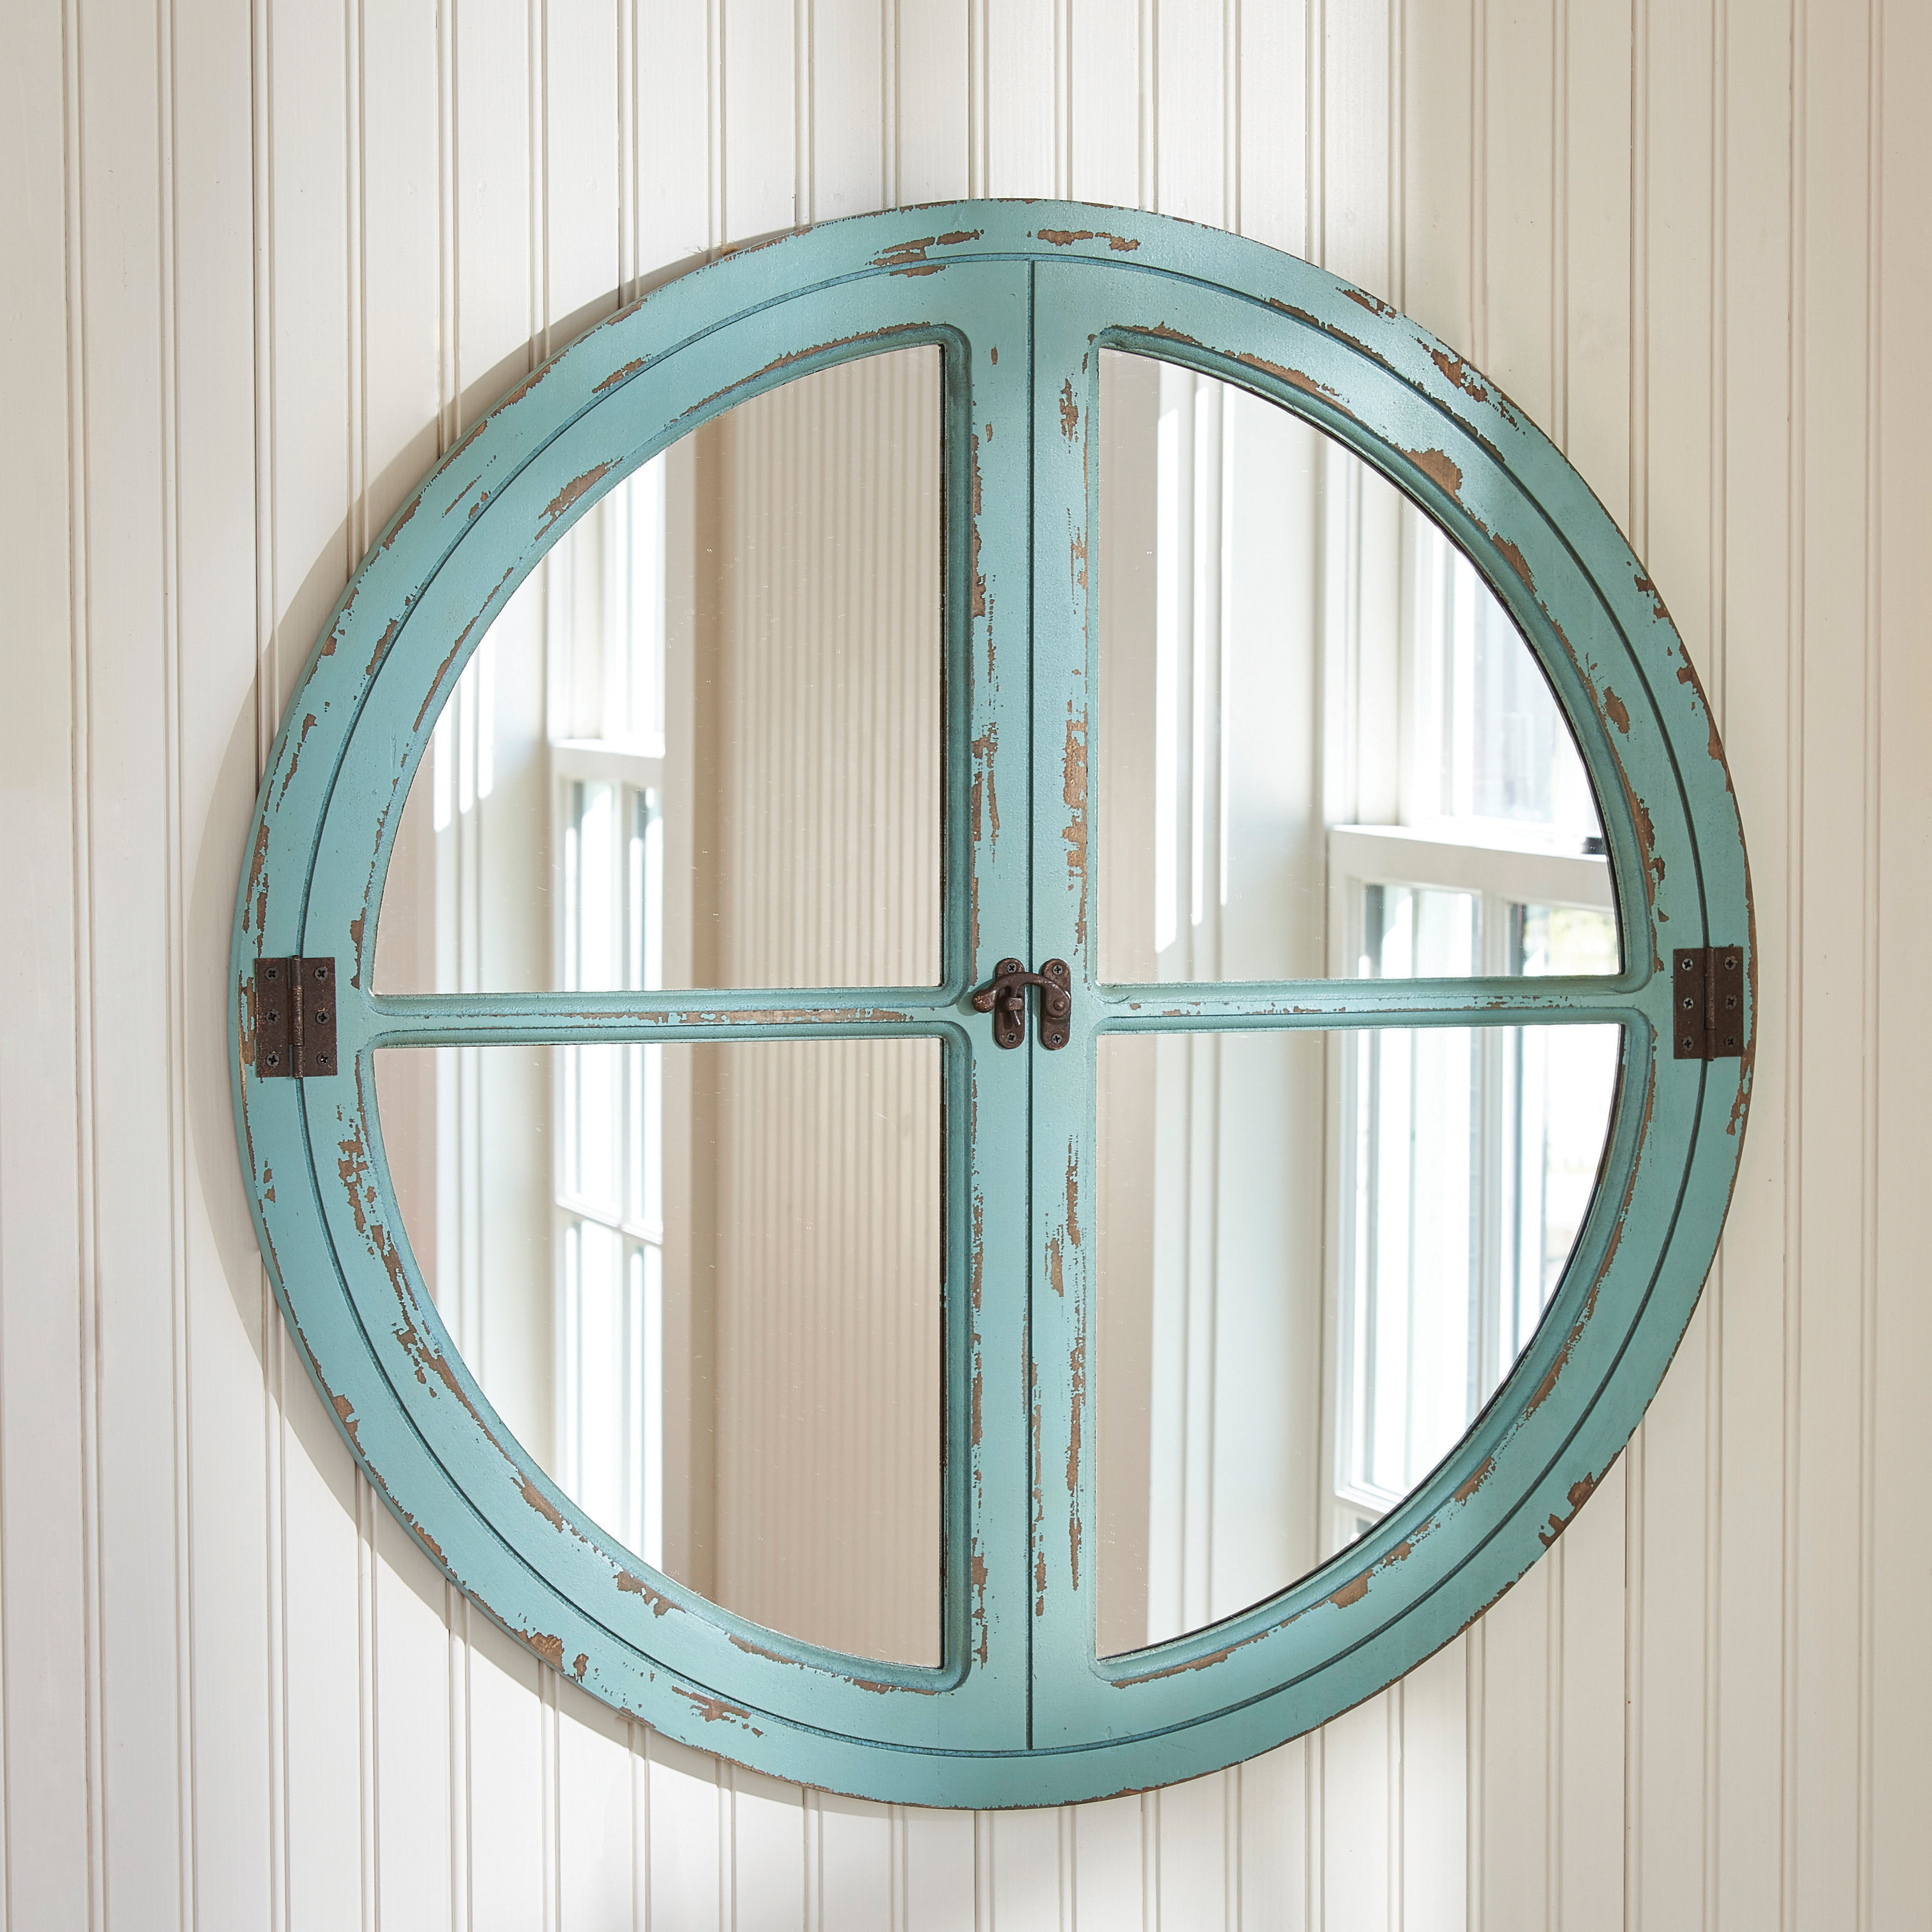 Latest Round Window Sea Wall Mirror Inside Beachy Wall Mirrors (View 13 of 20)